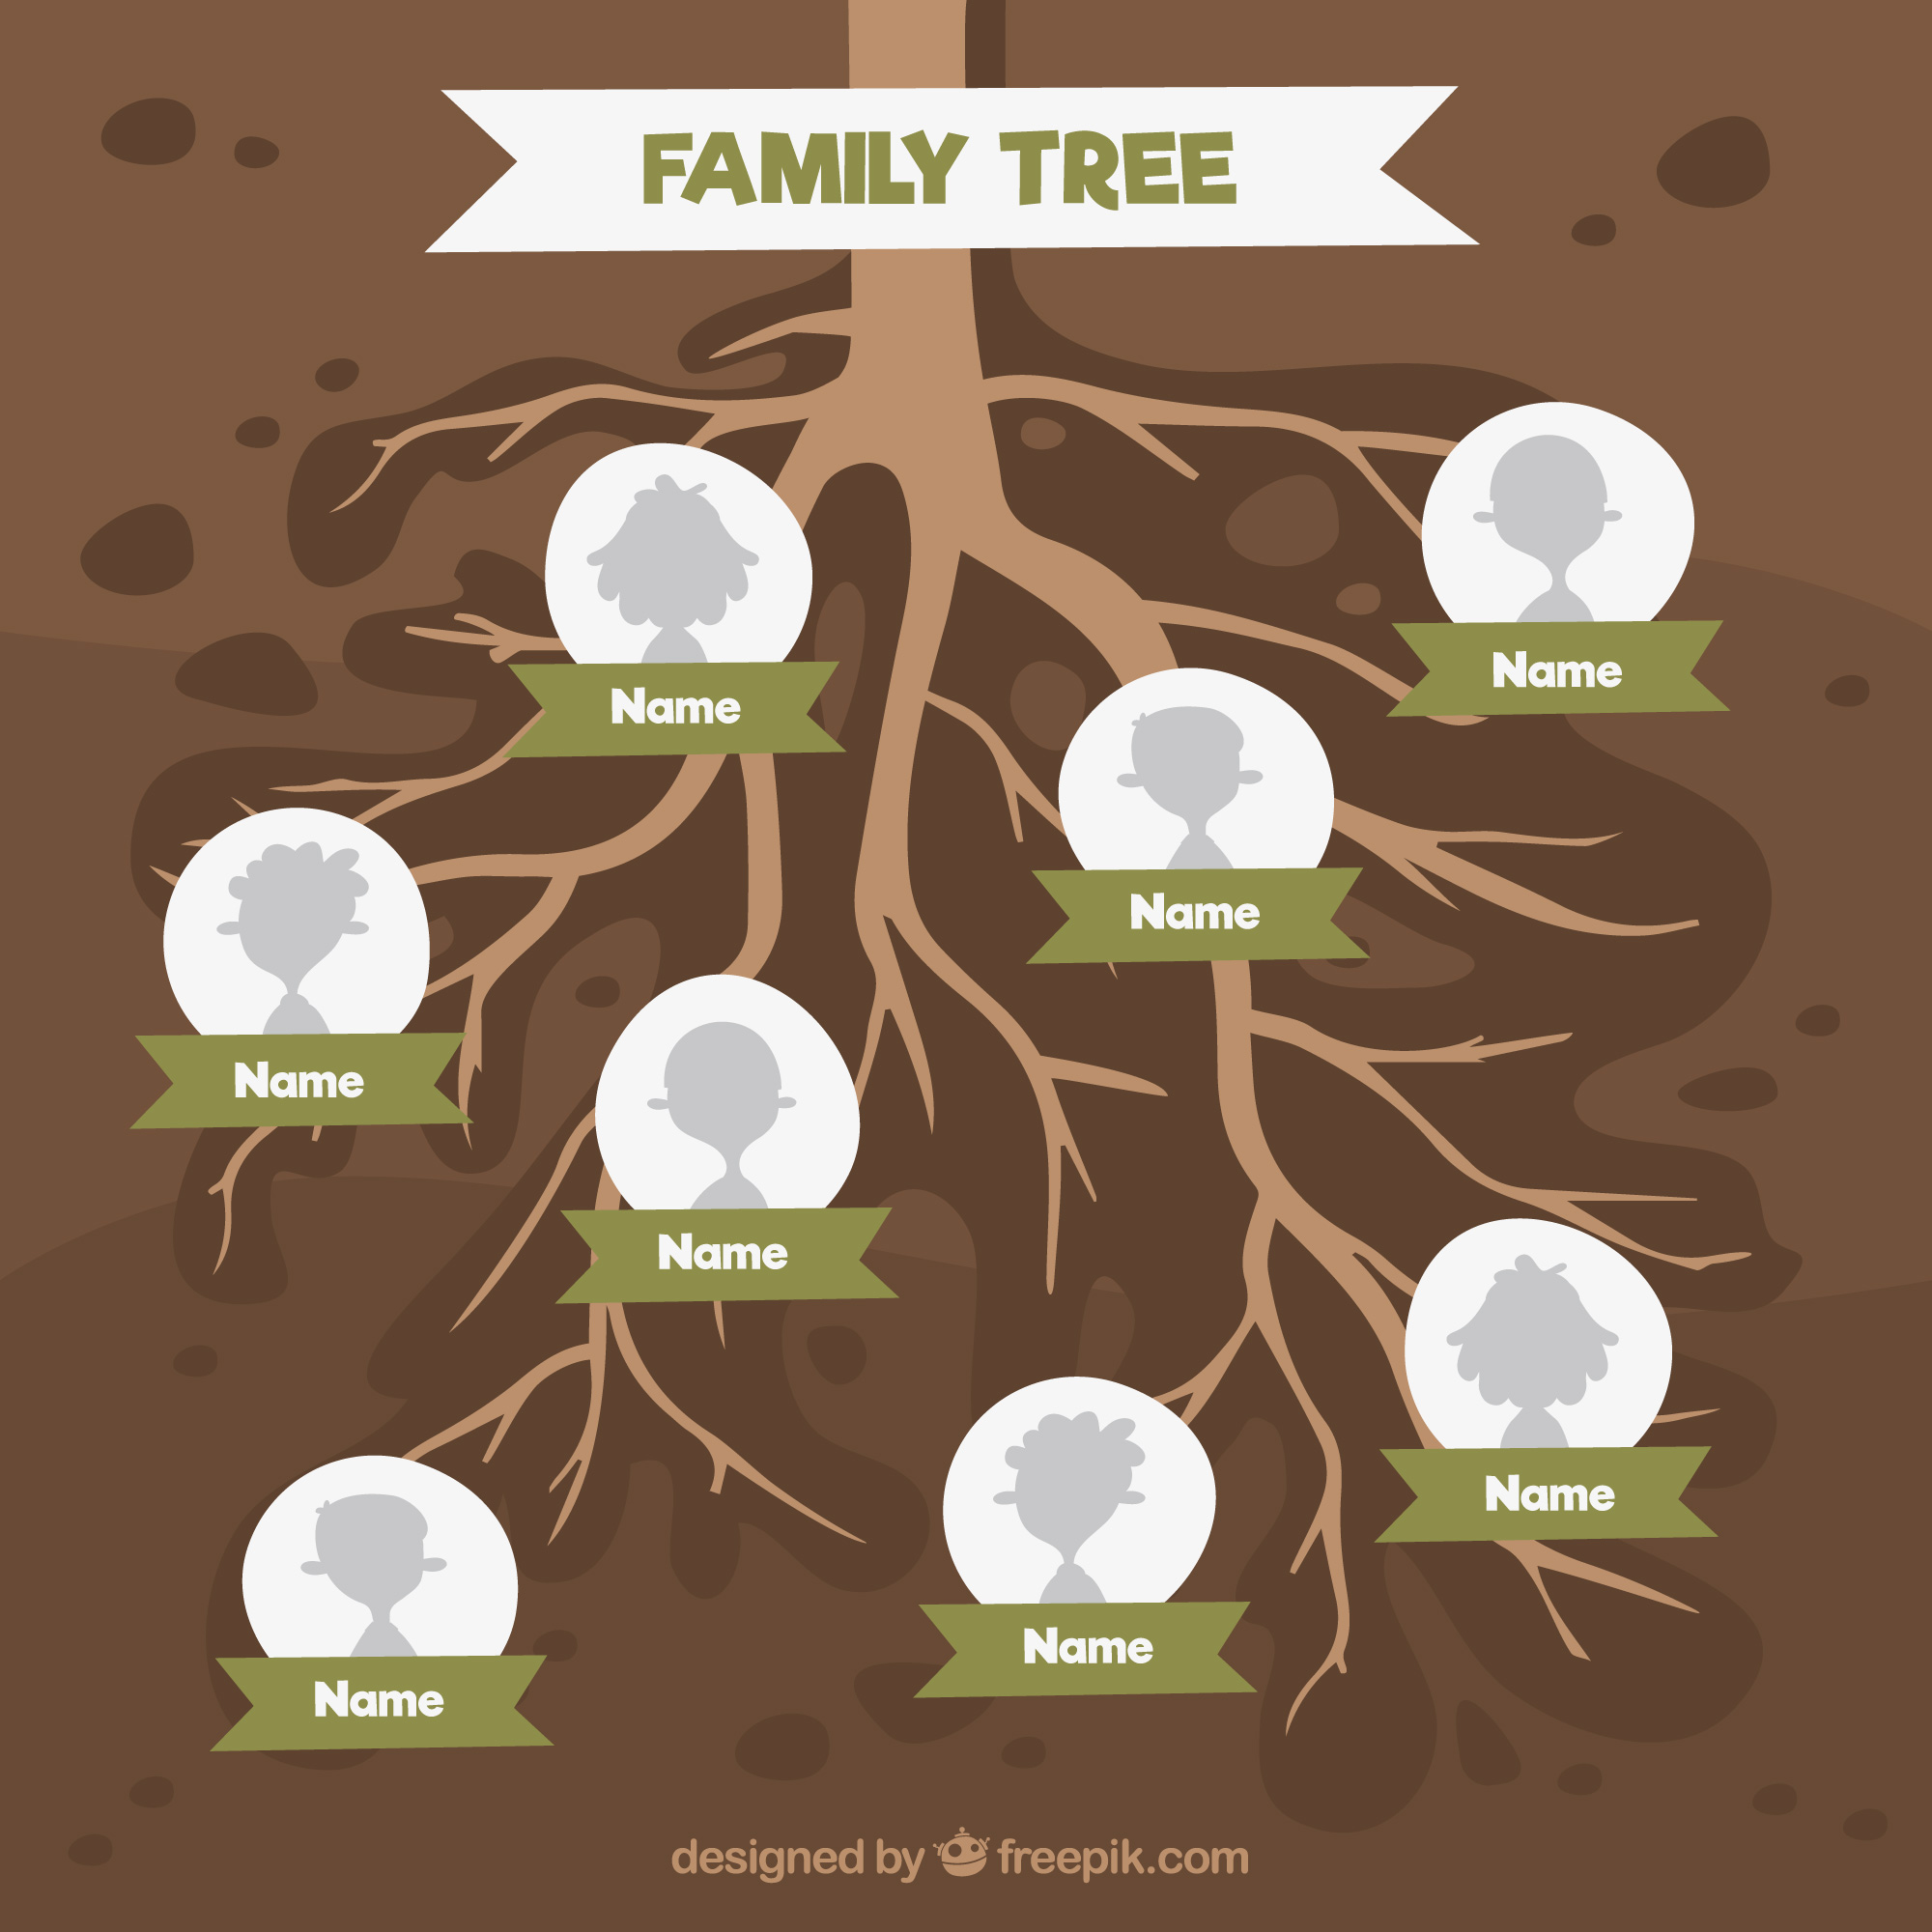 I will help you with your genealogy research